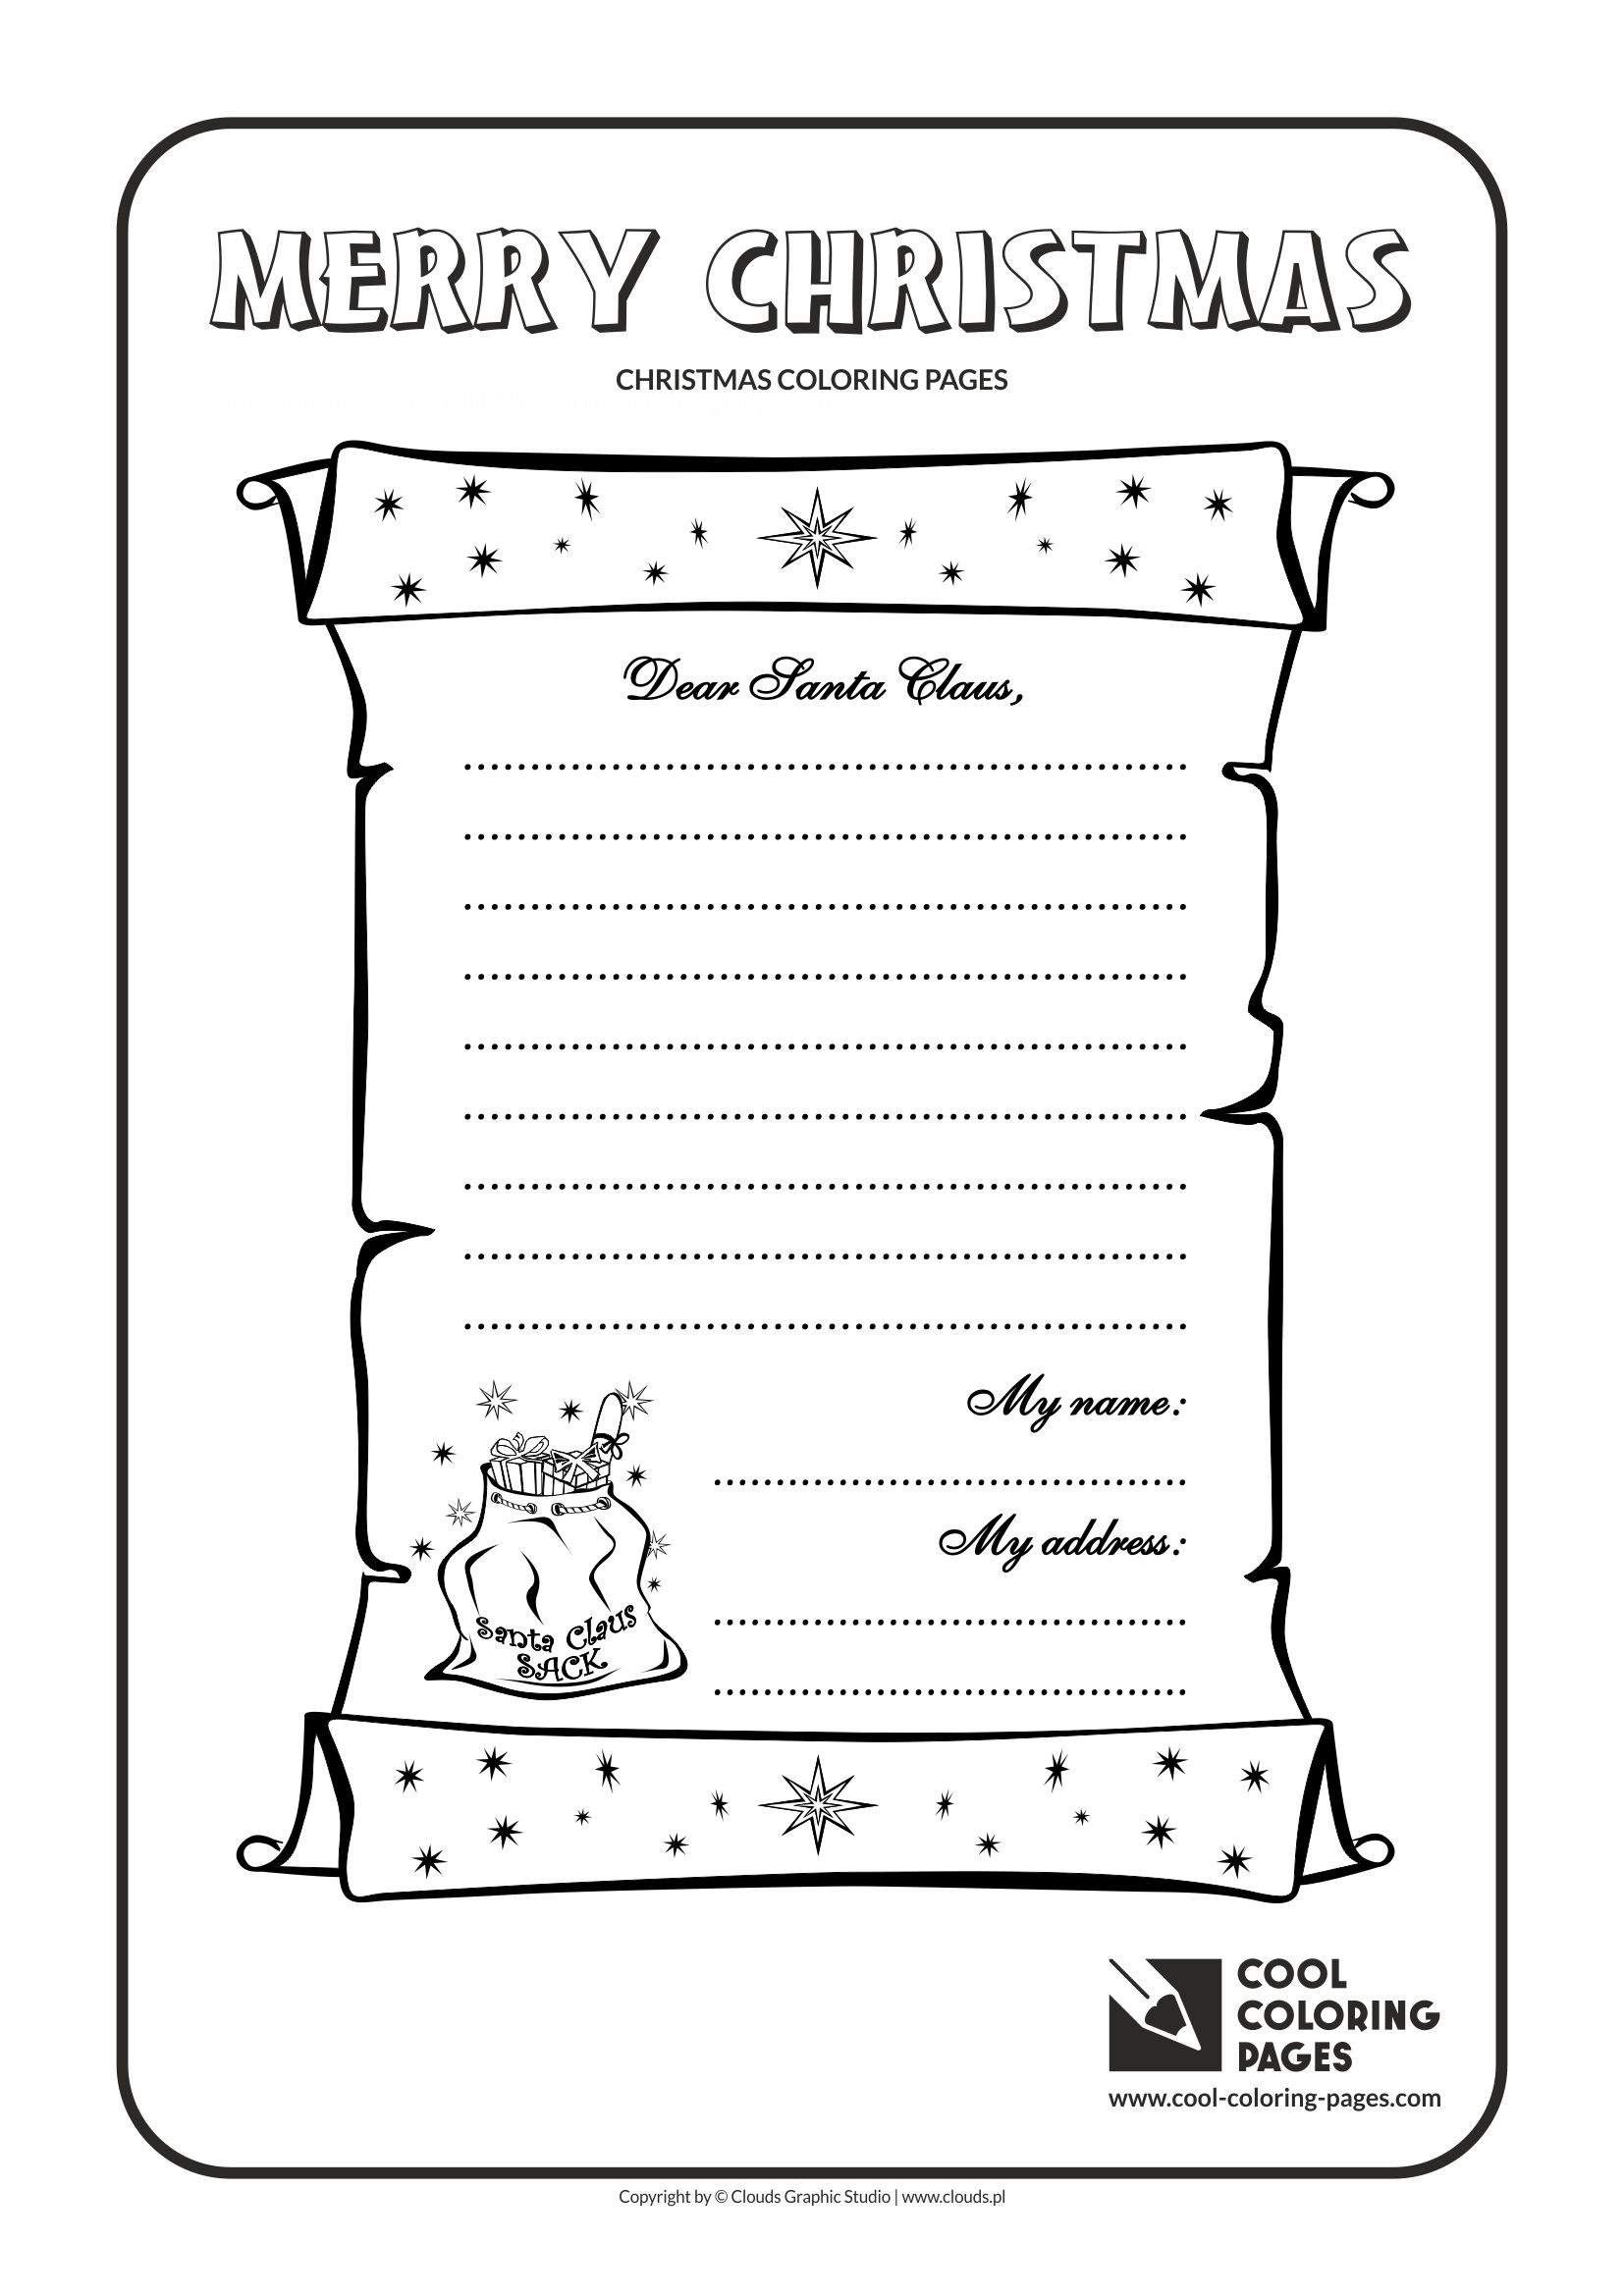 Cool Coloring Pages Letter To Santa Claus No 1 Coloring Page